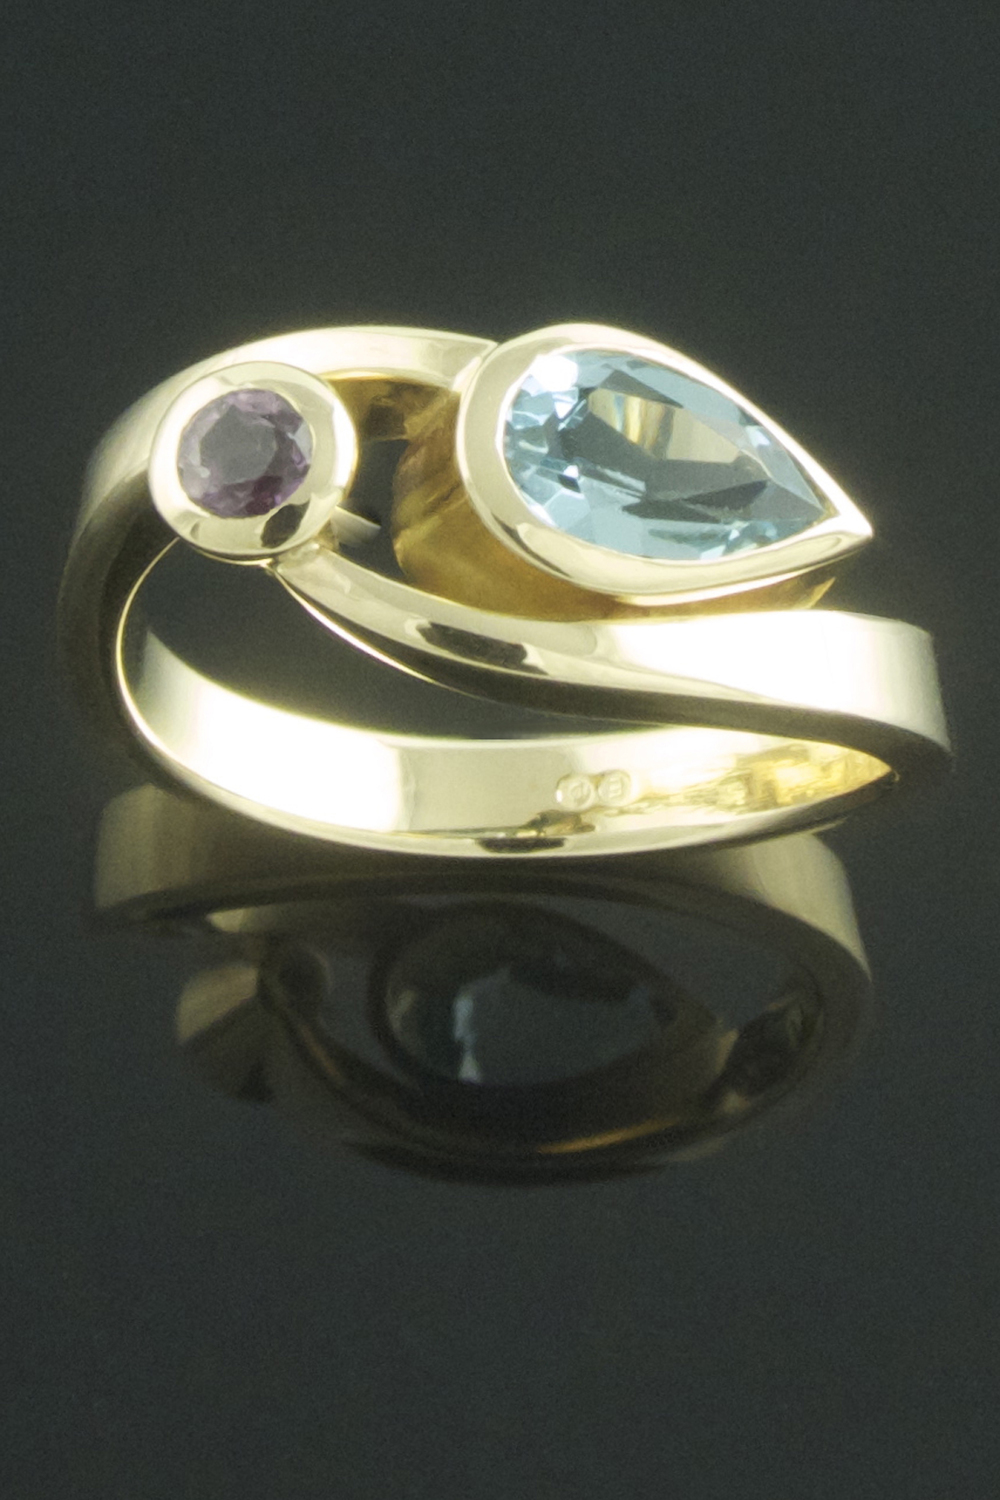 Twisted sapphire and aquamarine ring